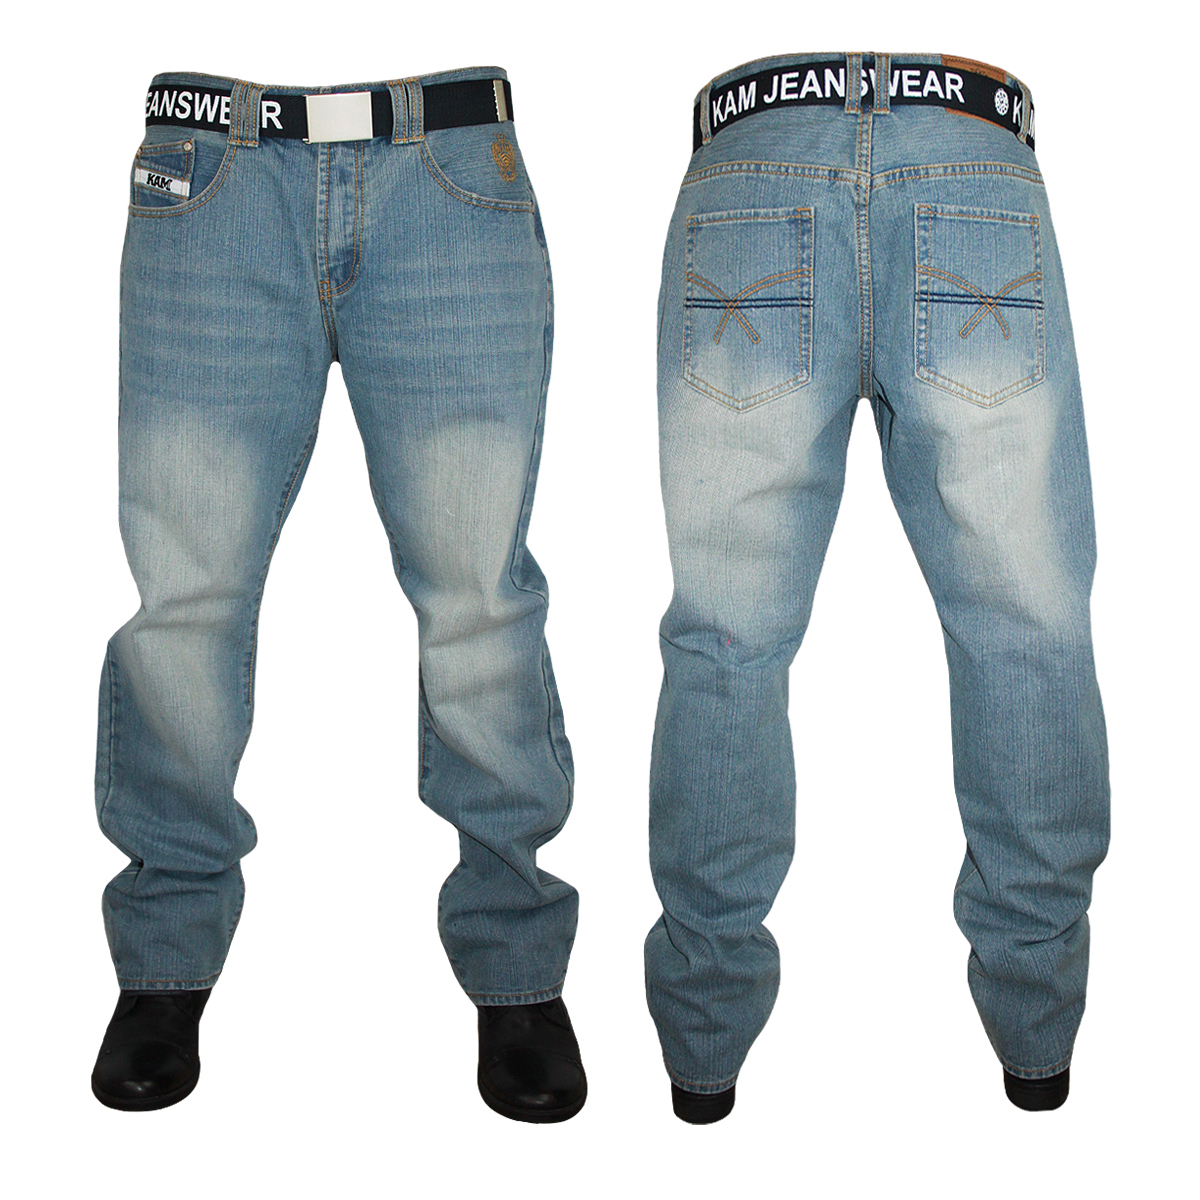 NEW-MENS-FORGE-BY-KAM-DESIGNER-BOOT-CUT-JEANS-ALL-WAIST-AND-LEG-BIG-KING-SIZES